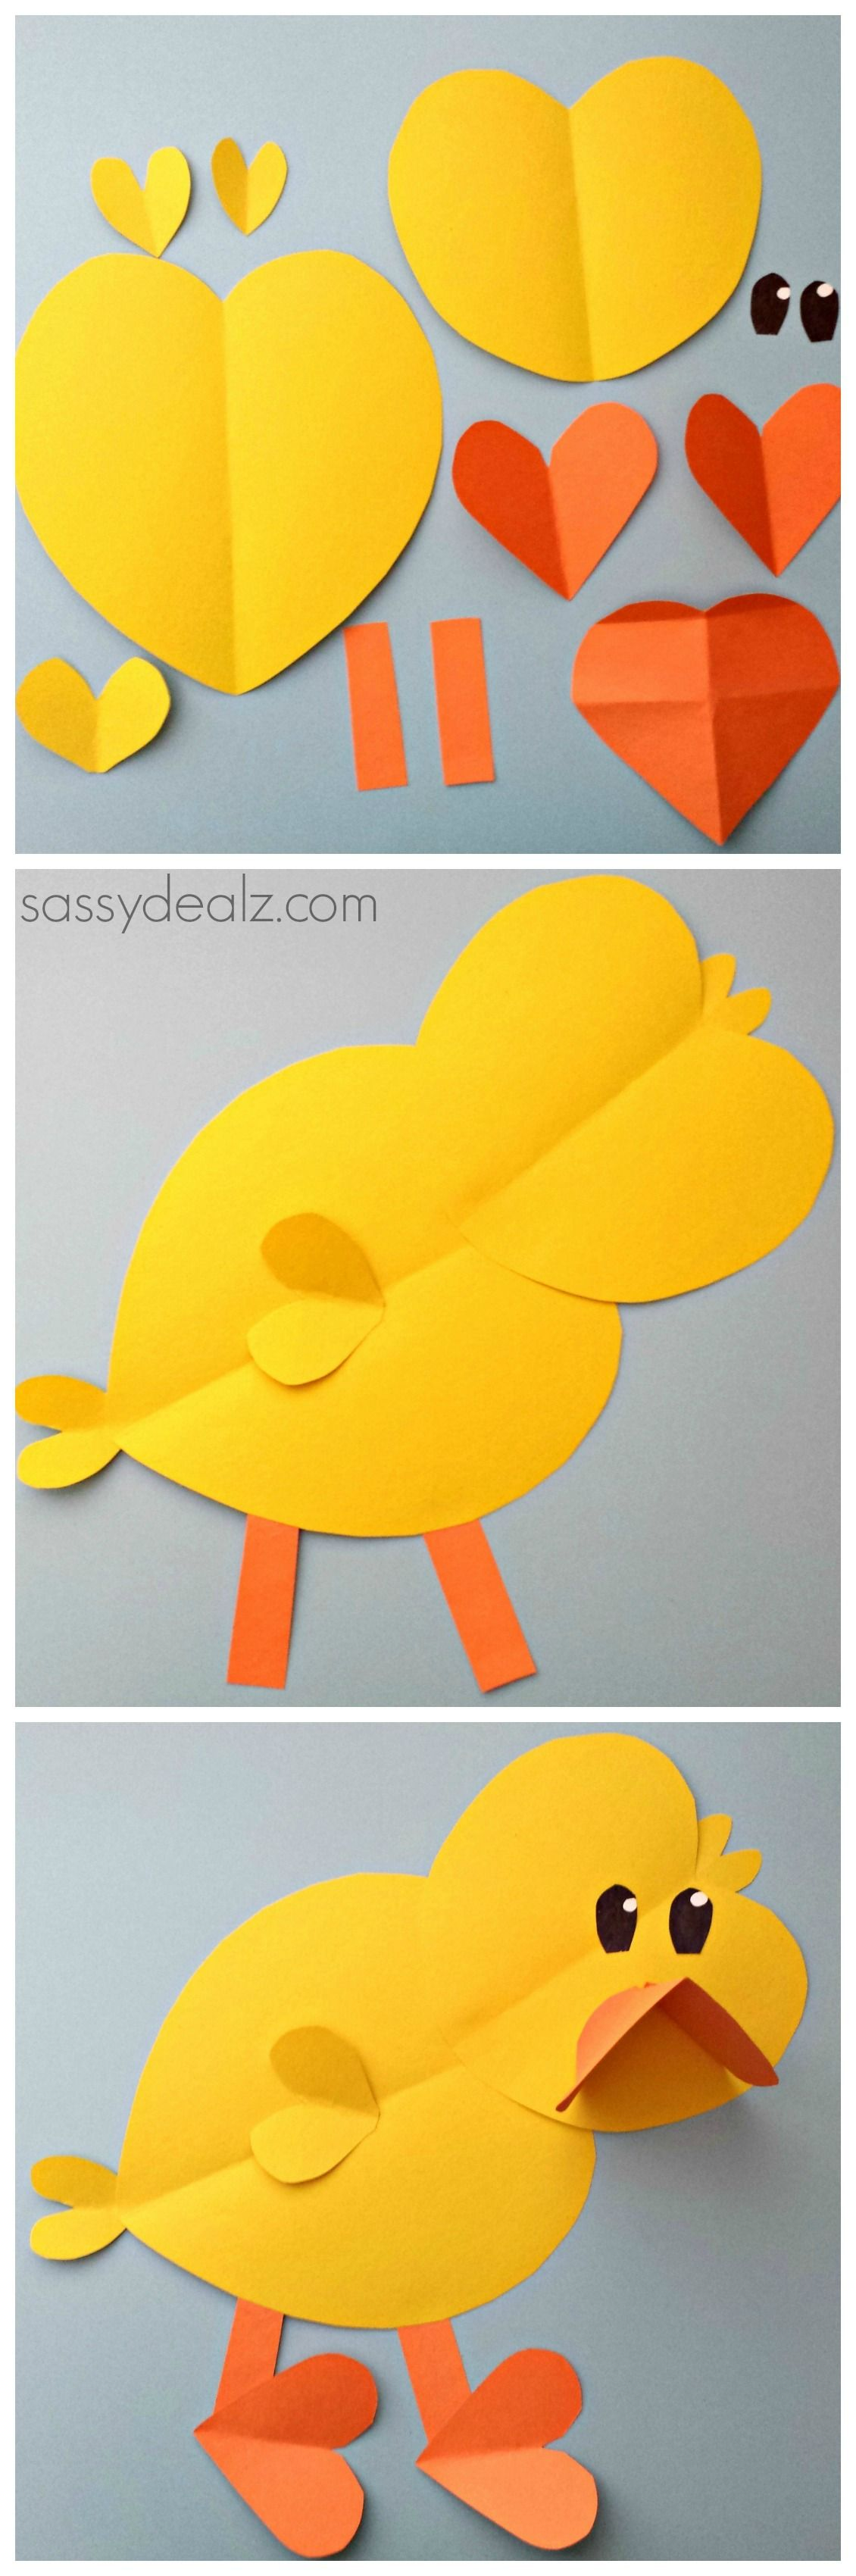 Chick Craft For Kids Made Out Of Paper Hearts DIY Easter Art Project